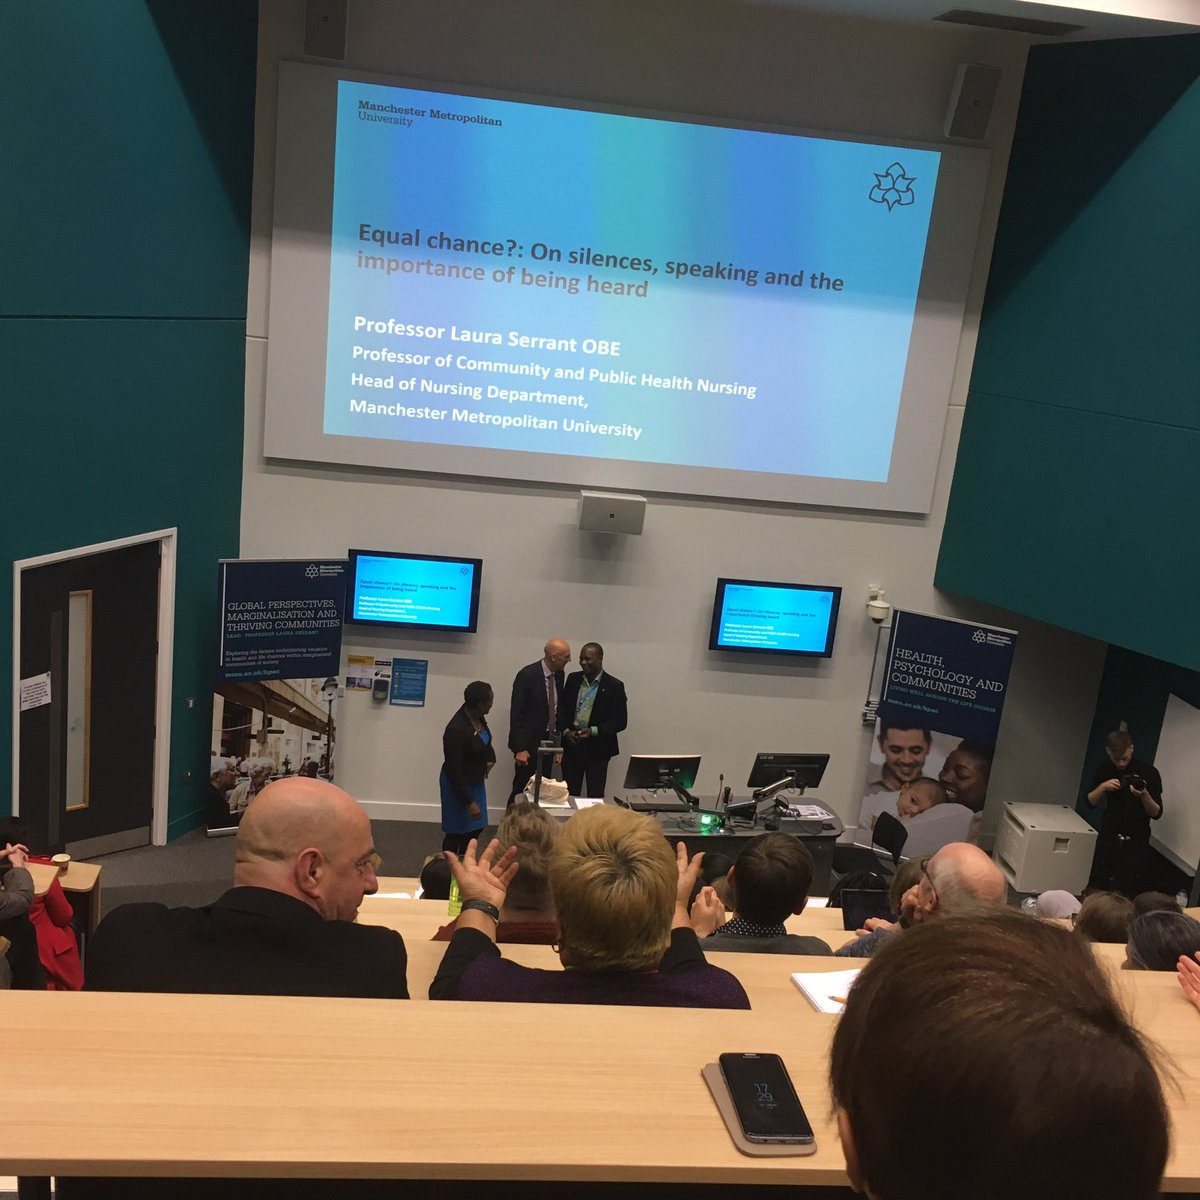 A packed lecture theatre for @lauraserrant inaugural lecture! @HPSCResearch